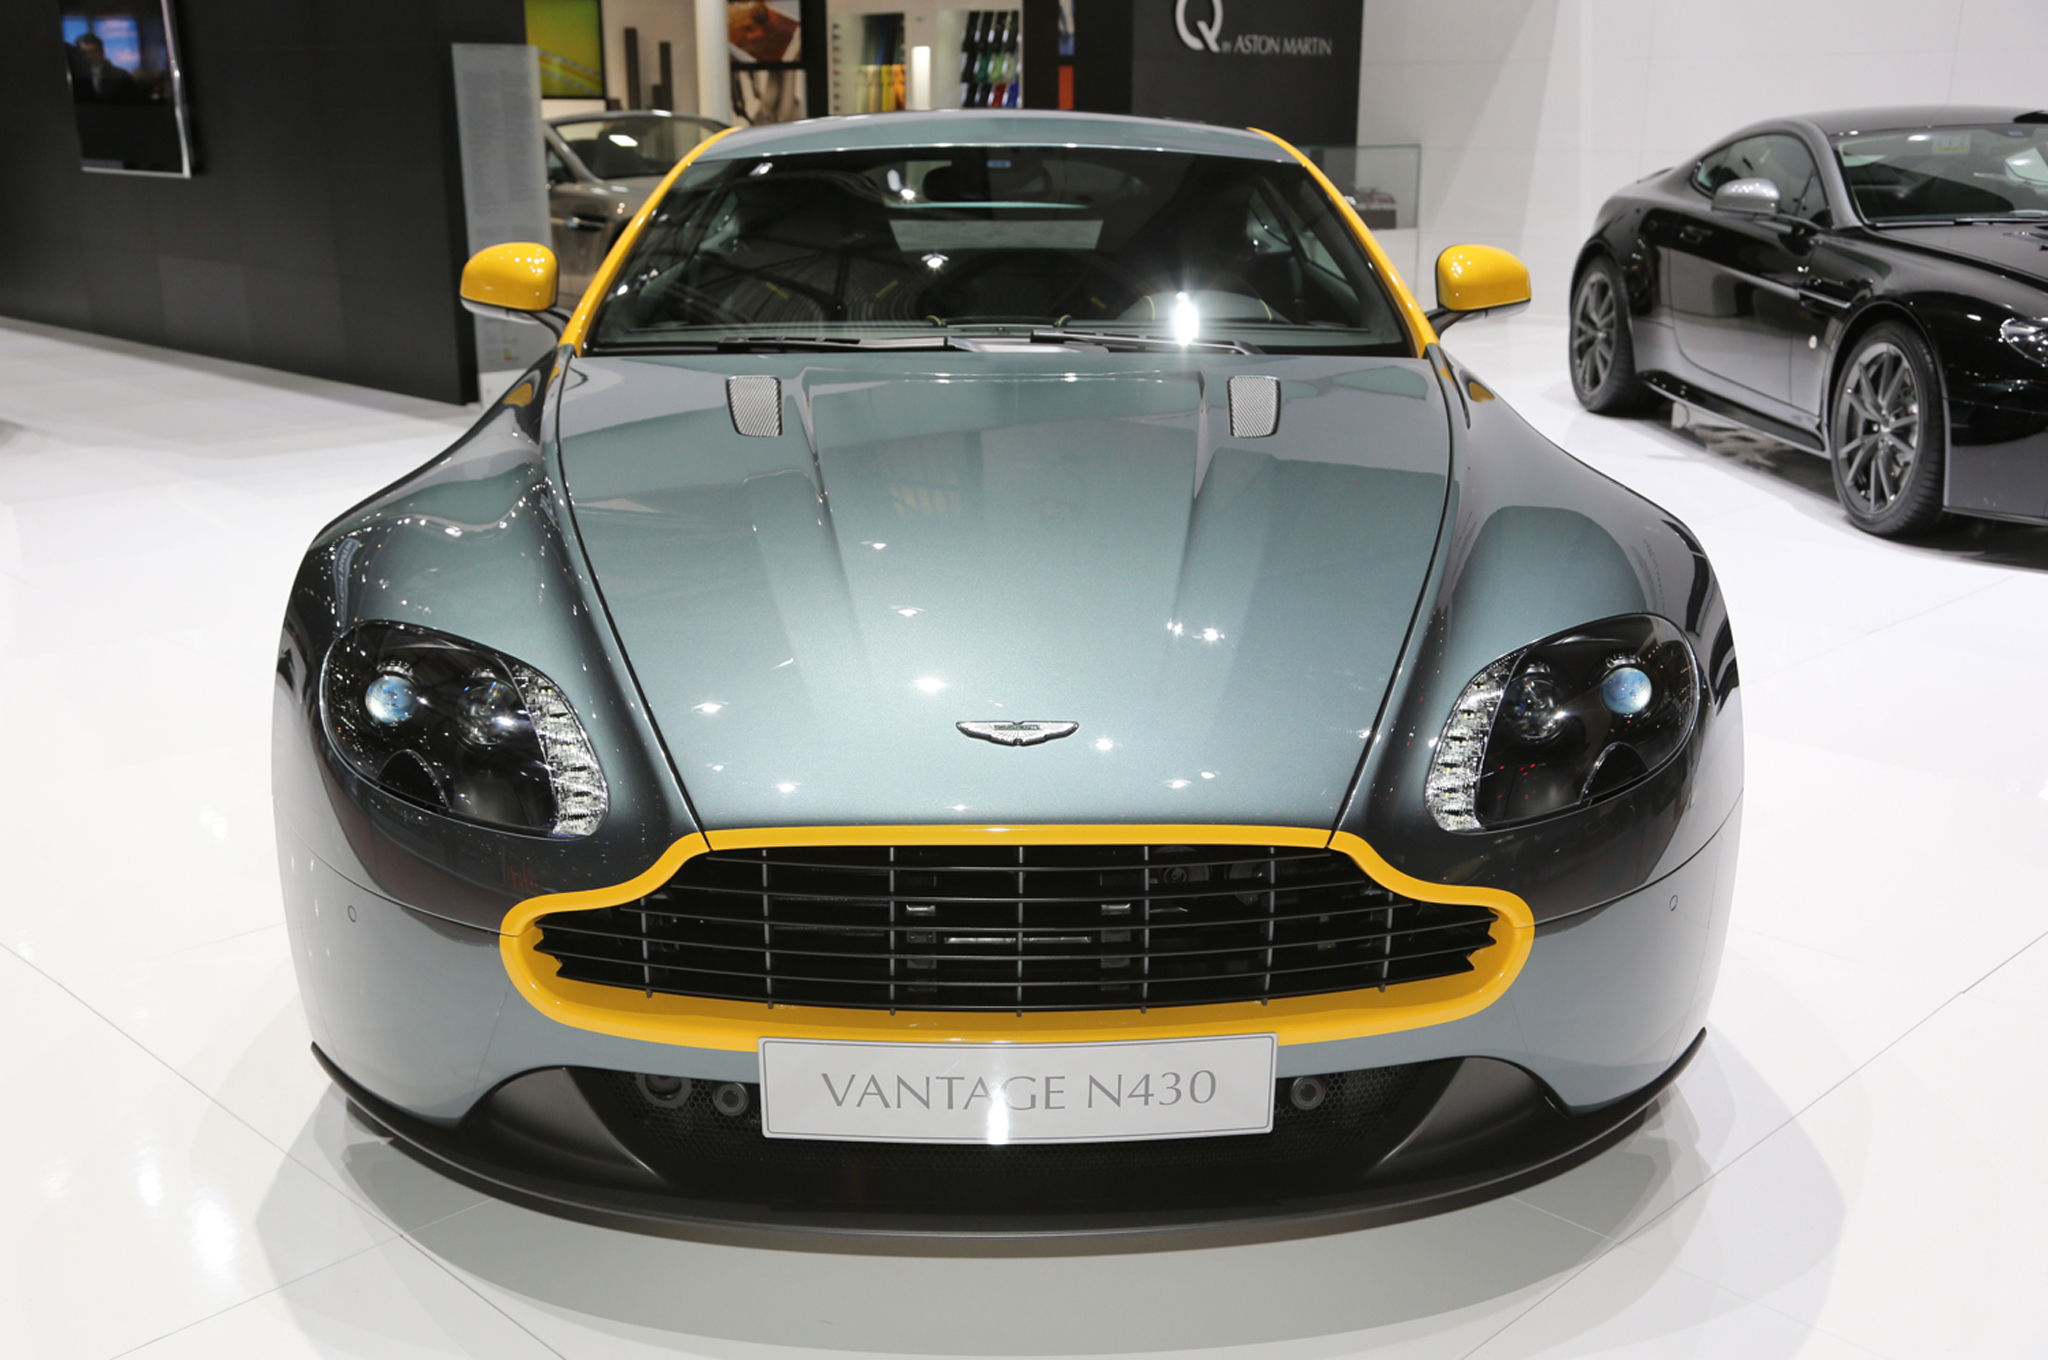 2015 Aston Martin V8 Vantage Gt Front Design (Photo 2 of 7)